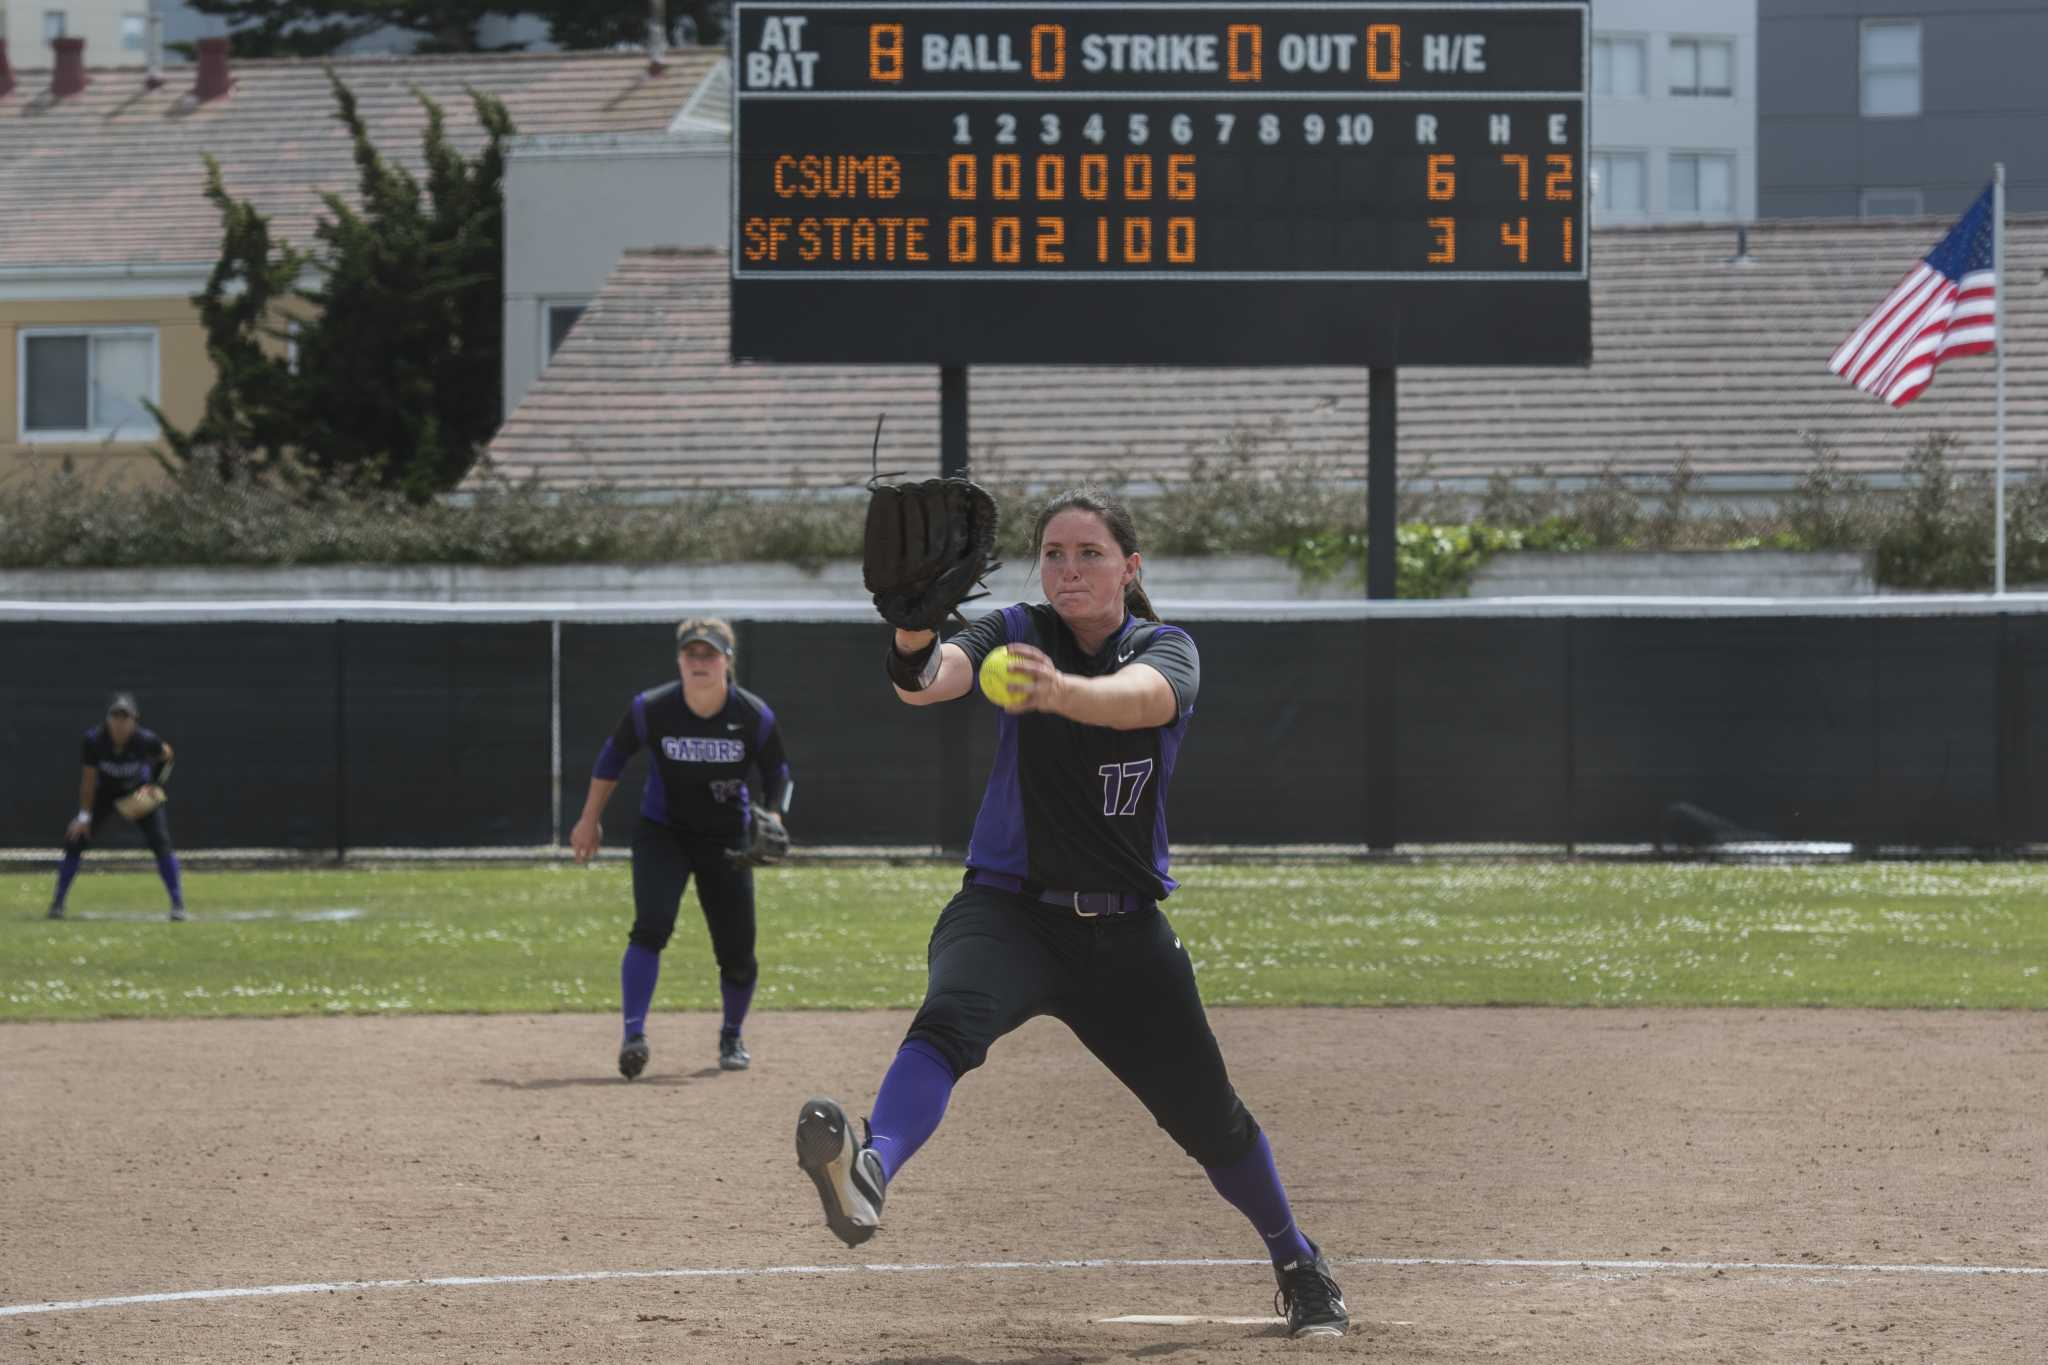 SF State Gators' senior left-hand pitcher Megan Clark (17) pitches against Cal State Monterey Bay Otters in the 7th inning after the Otters scored 6 points in the 6th inner at the Softball Park of SF State campus on Saturday, April 15, 2017. The Gators lose to the Otters 3-6. (Kin Lee/ Xpress)